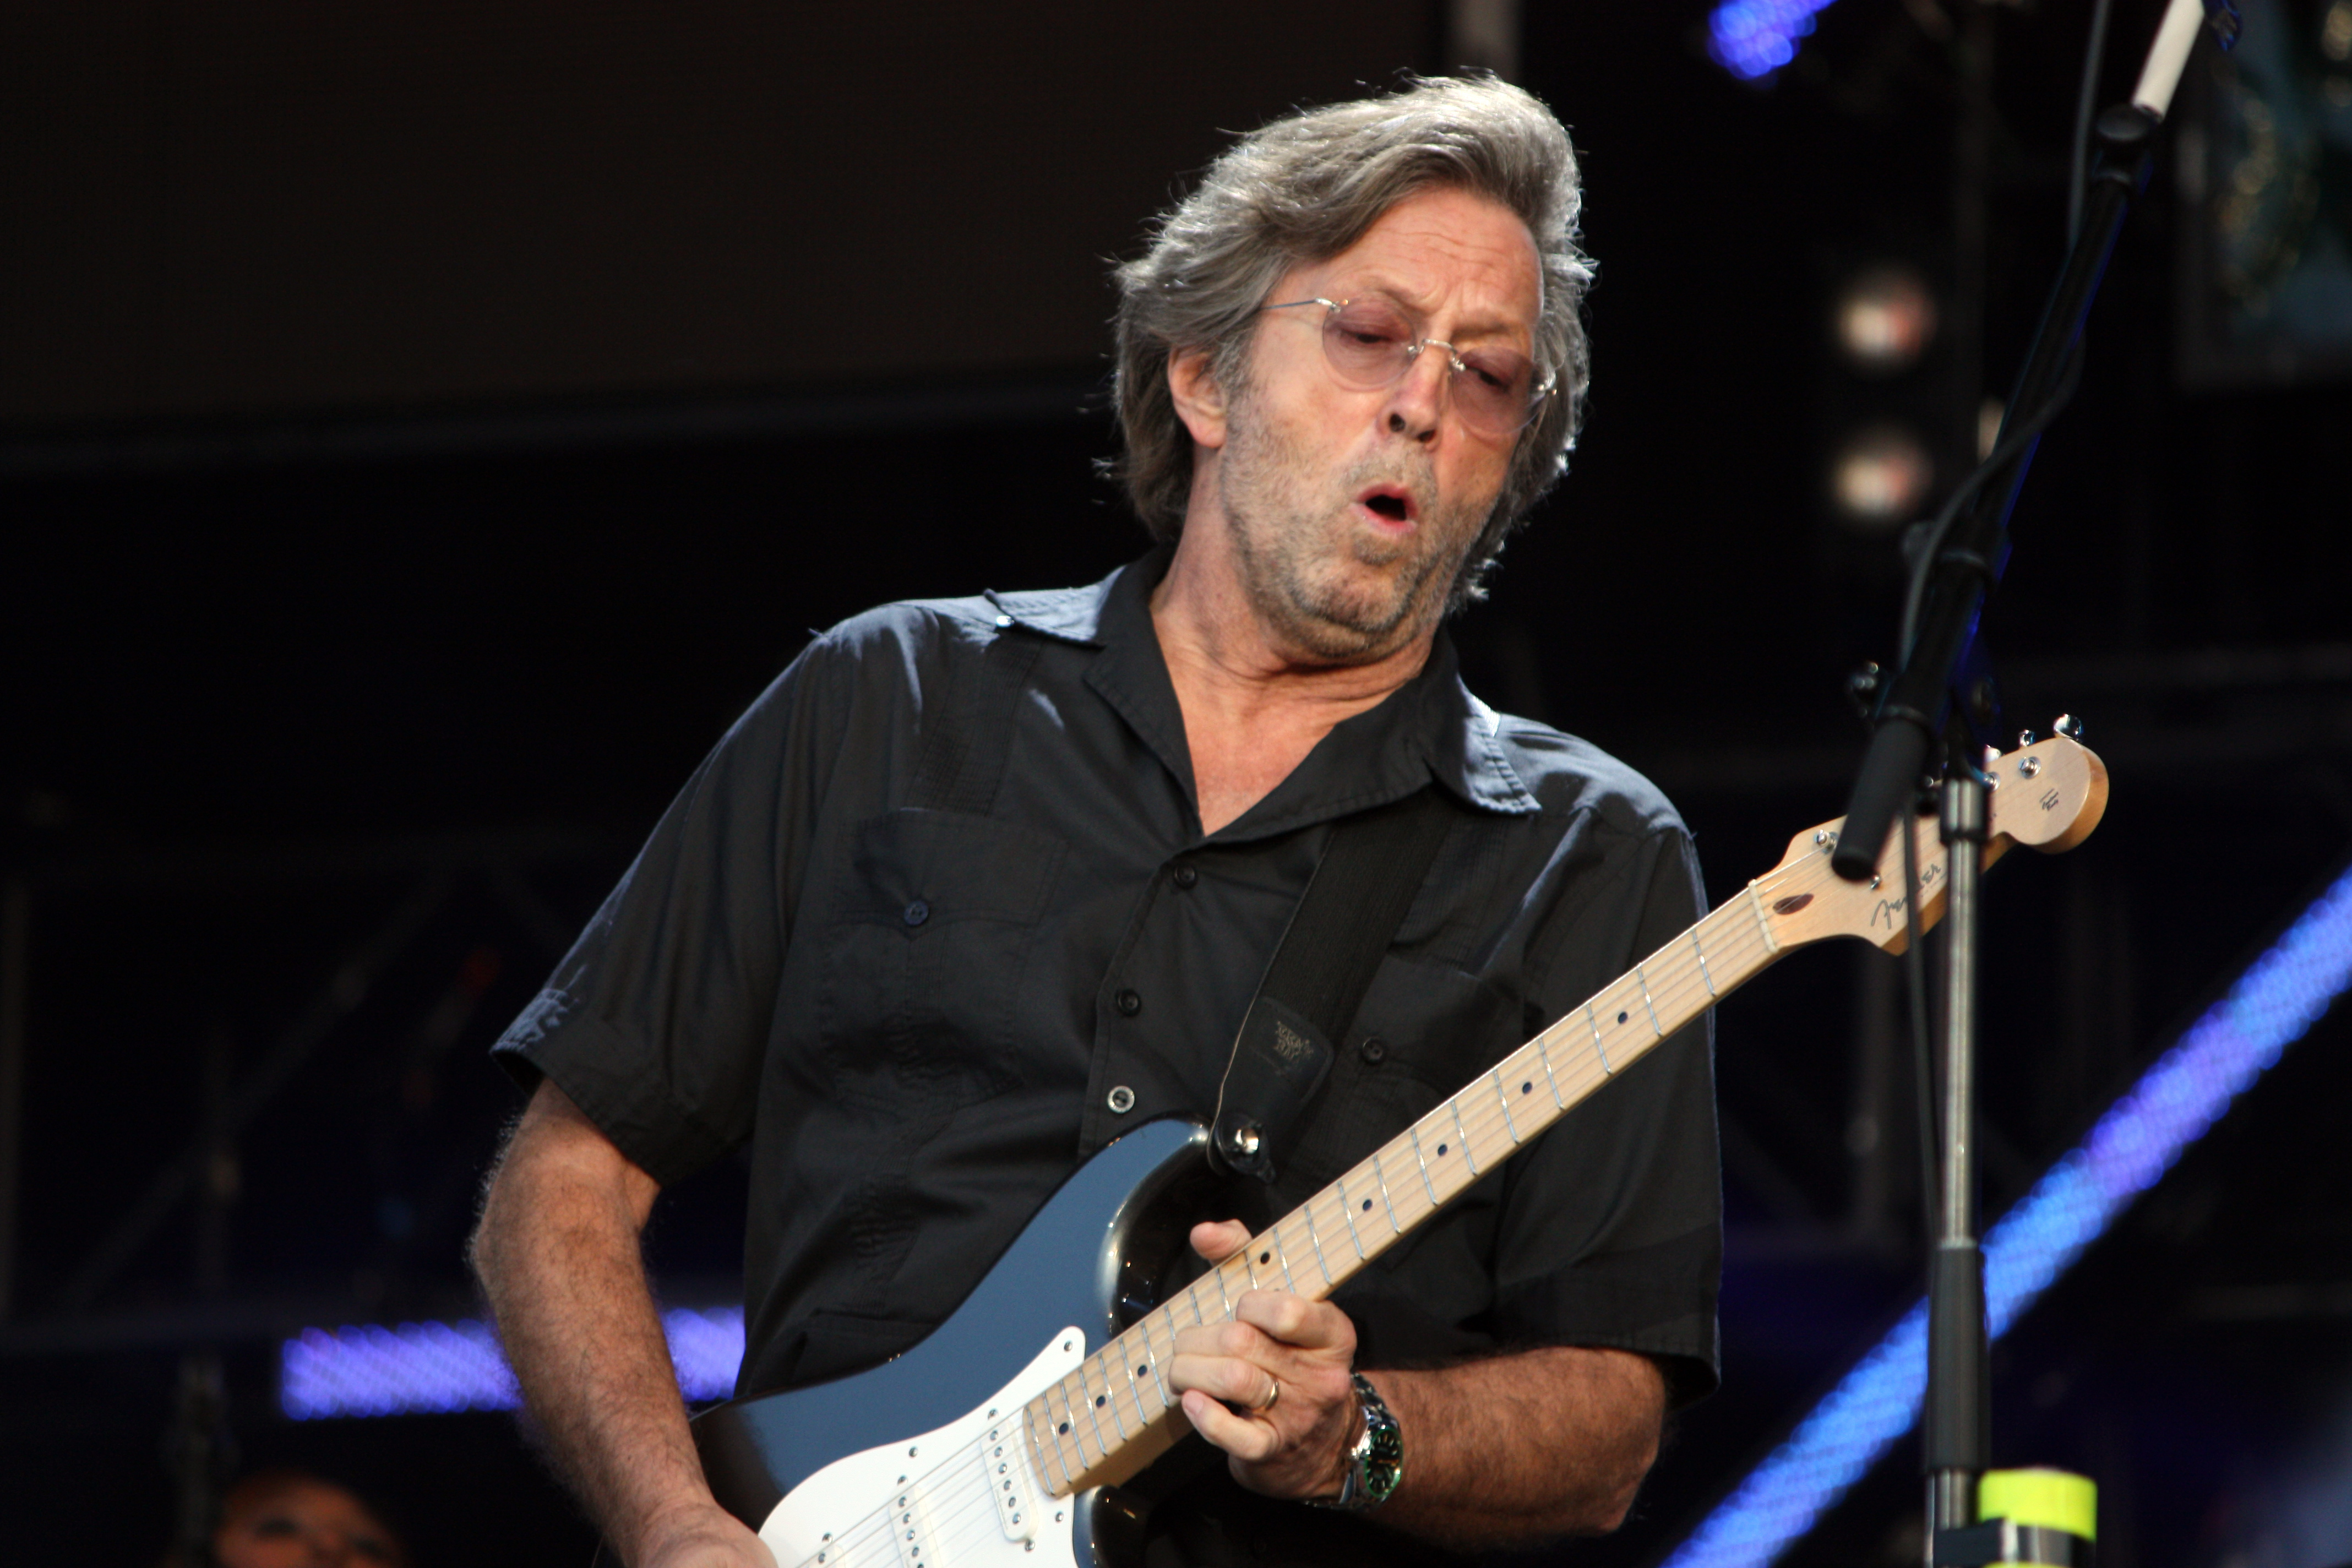 I want to play the guitar like Eric Clapton